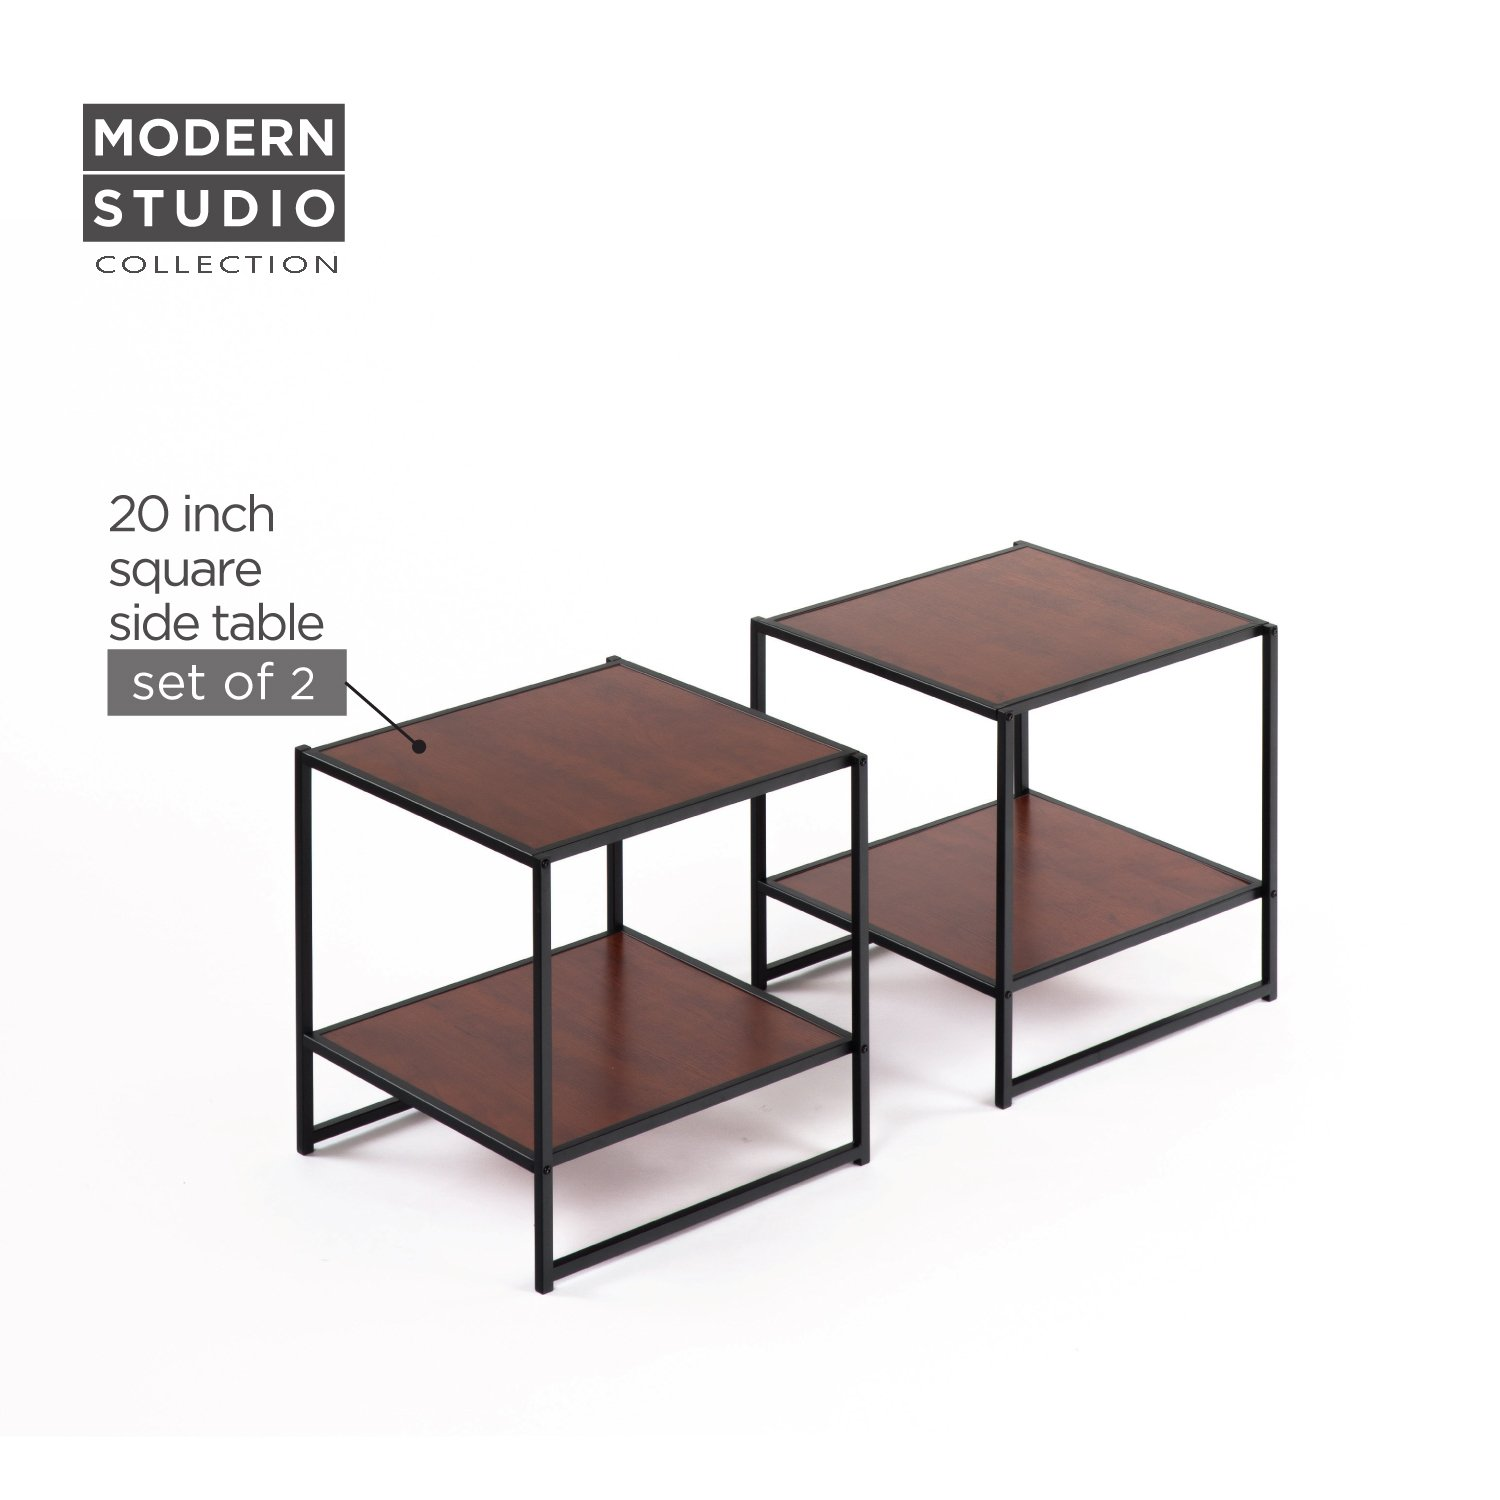 Zinus Modern Studio Collection Set of Two 20 Inch Square Side / End Tables / Night Stands by Zinus